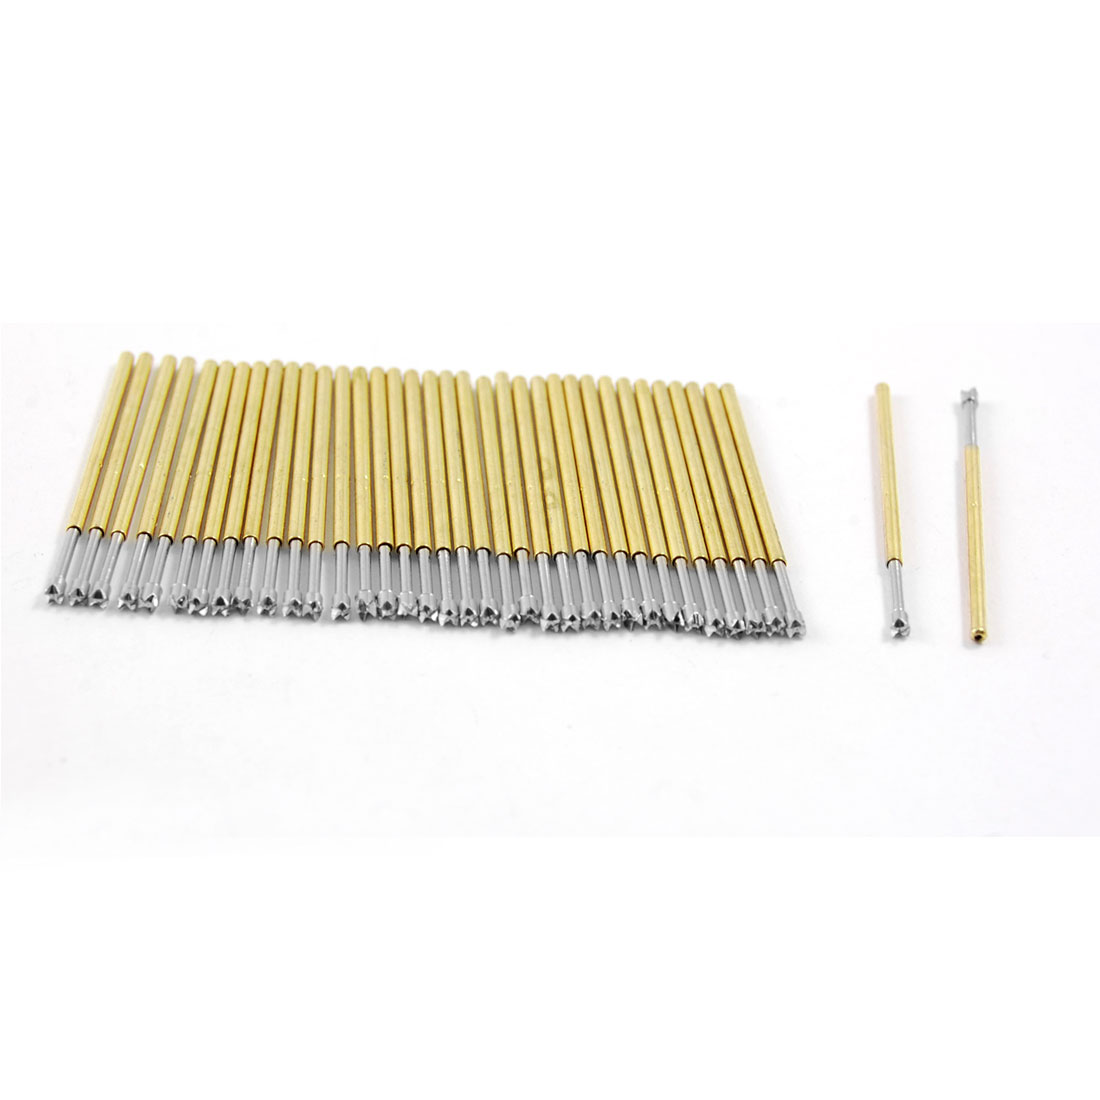 100x 4-Point Crown Tip Spring Test Probes Pins 32.3mm Length P100-Q2